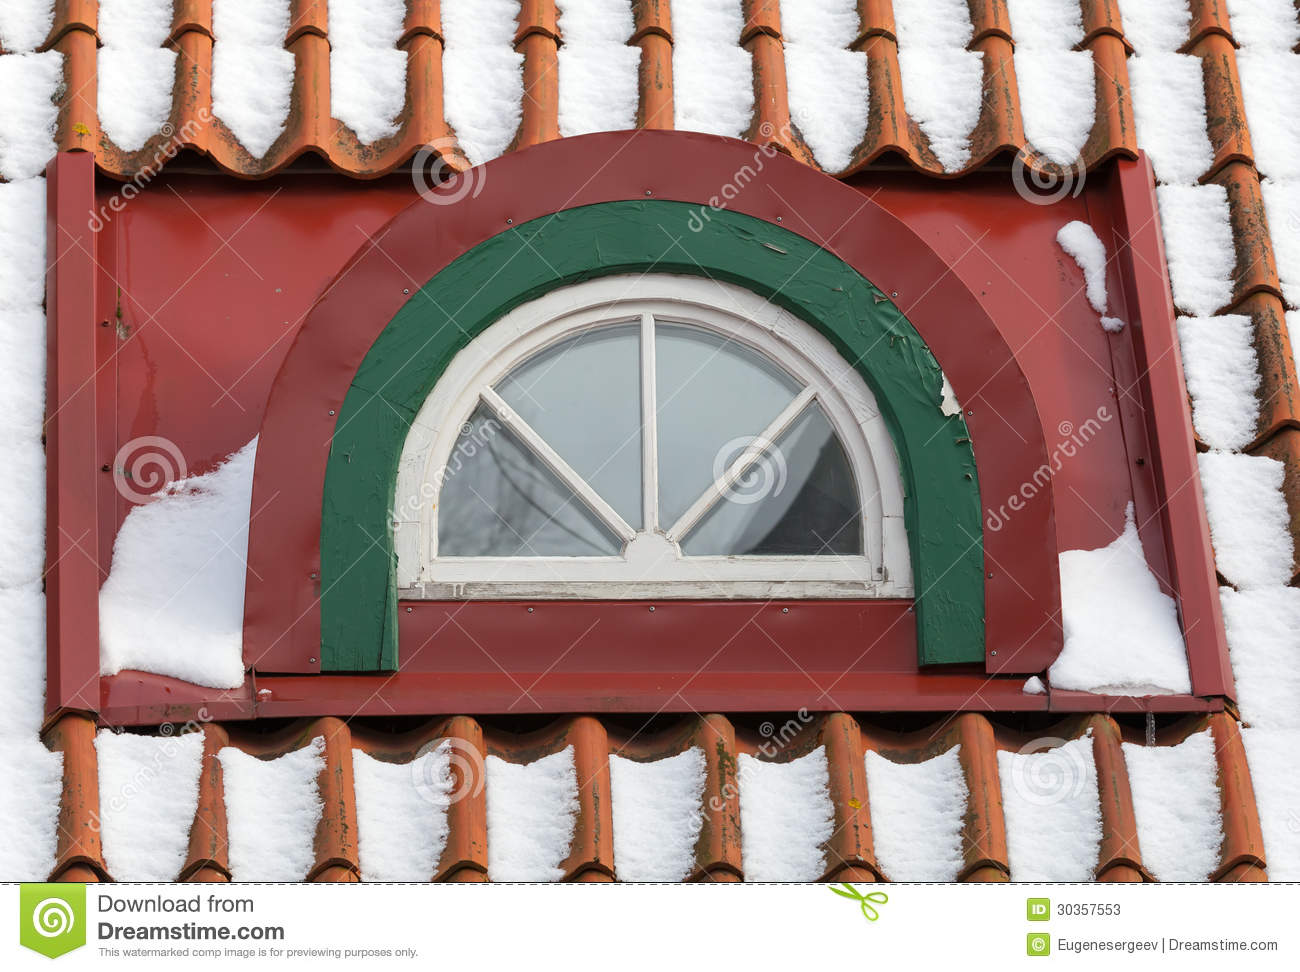 4 Season Roofing Attic Arch Window With Snow On Red Tile Roof Stock Photos ...